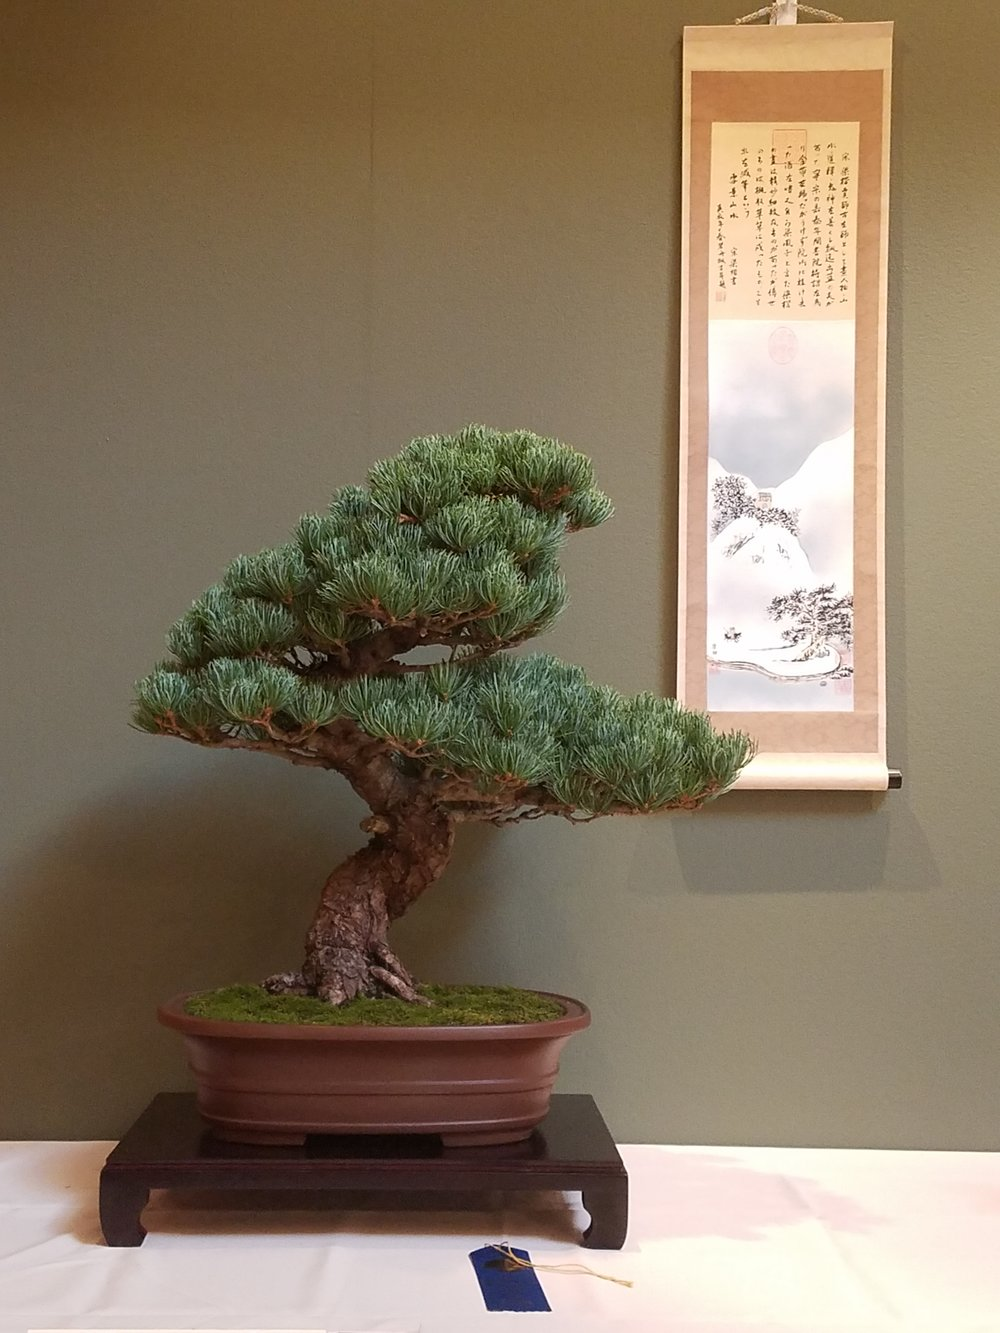 2017 Mid-America Bonsai Exhibition - Japanese White Pine - Informal Upright